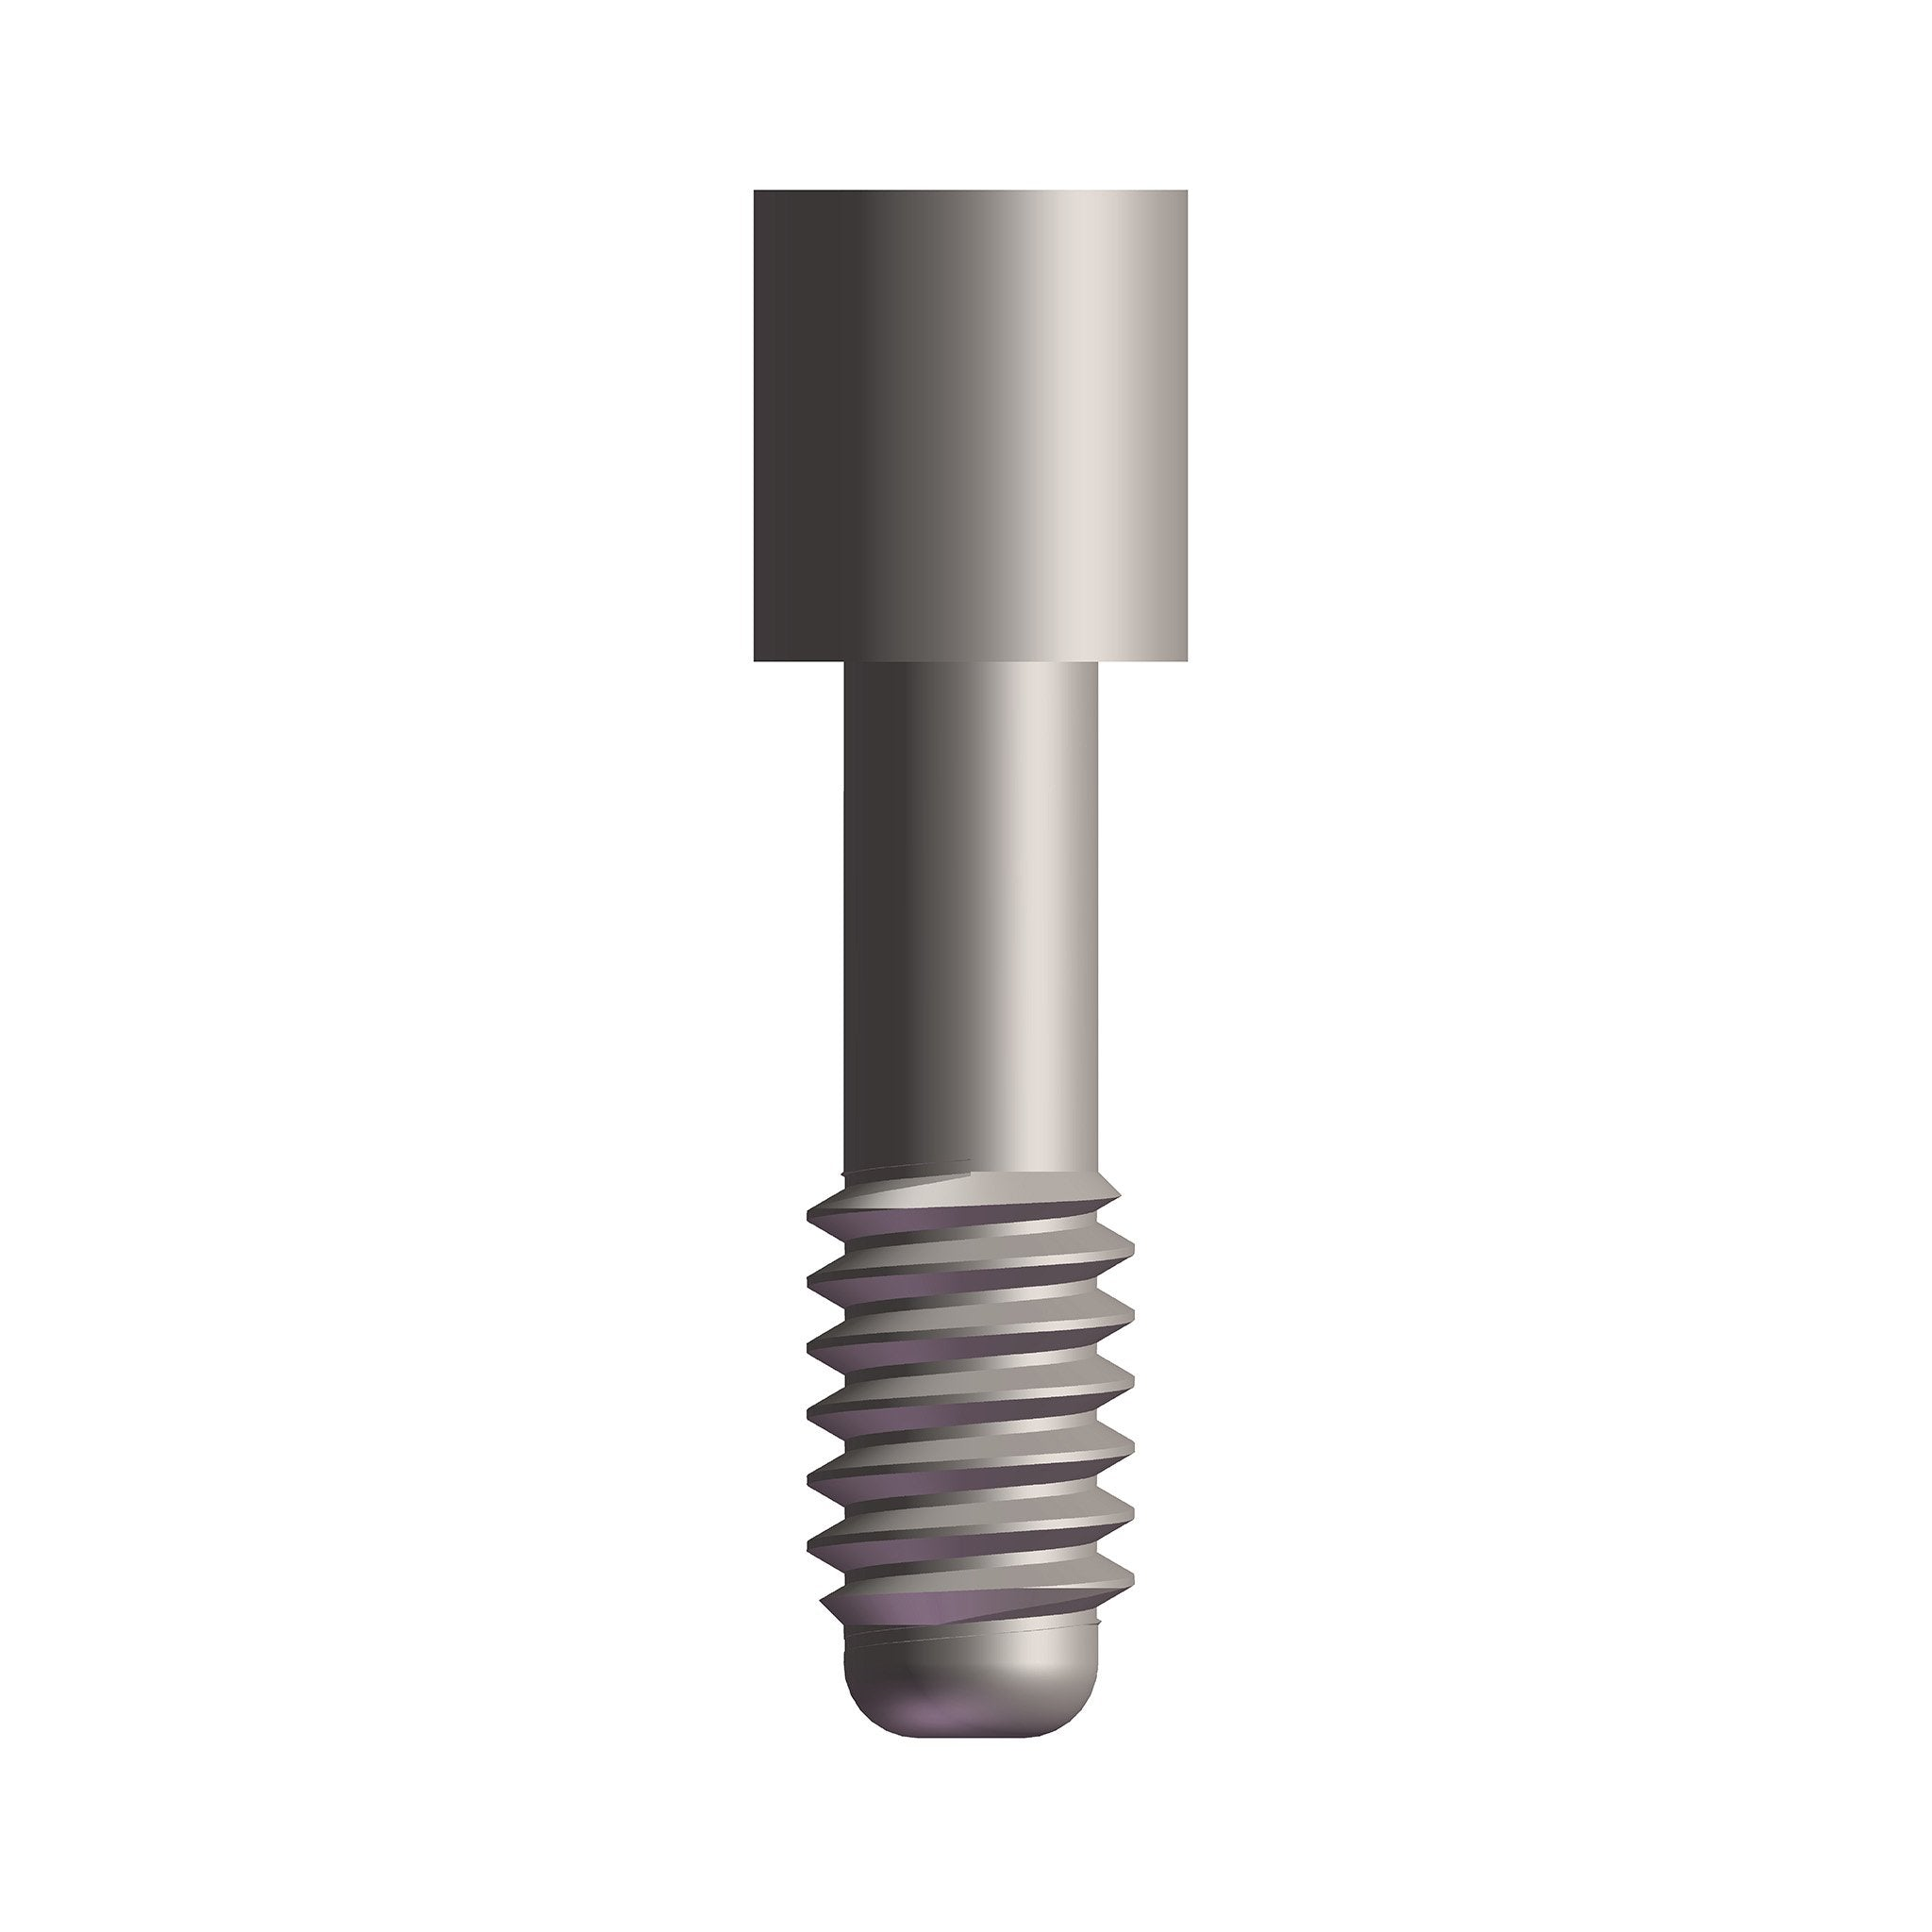 I-HEXMRT™ Abutment Screw | K3